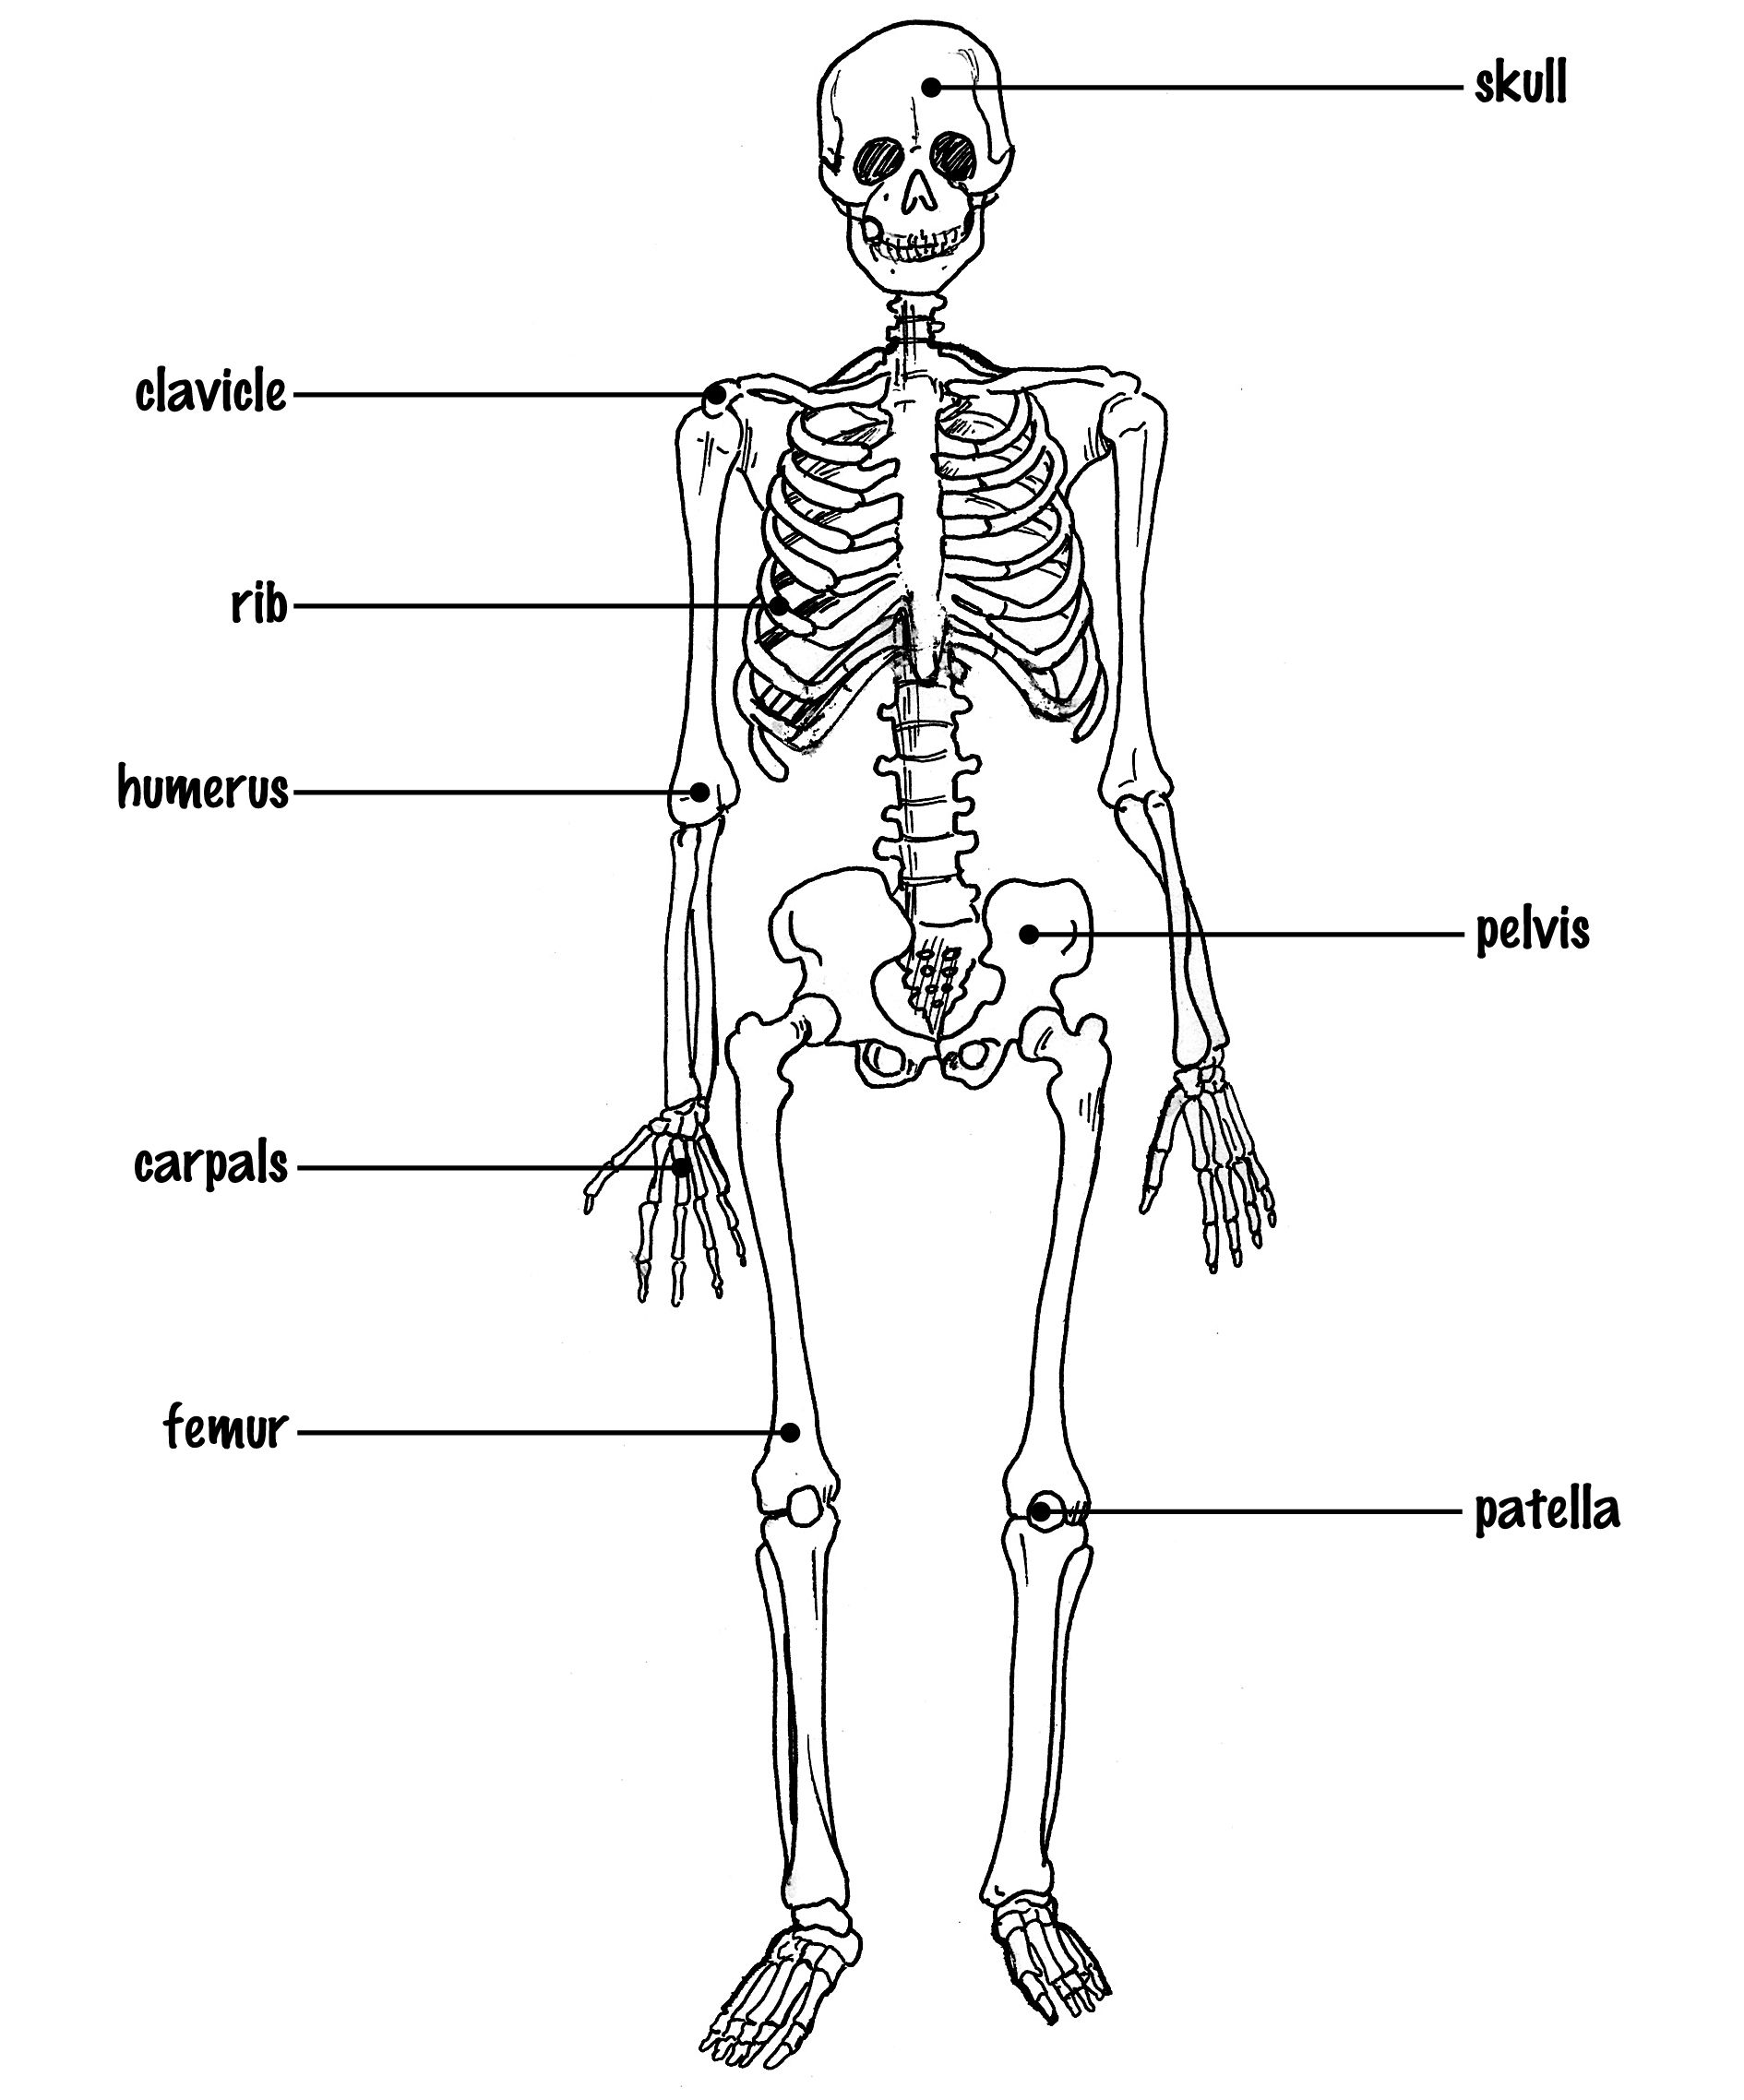 The Skeletal System Diagram Labeled The Skeletal System Diagram Labeled Simple Skeletal System